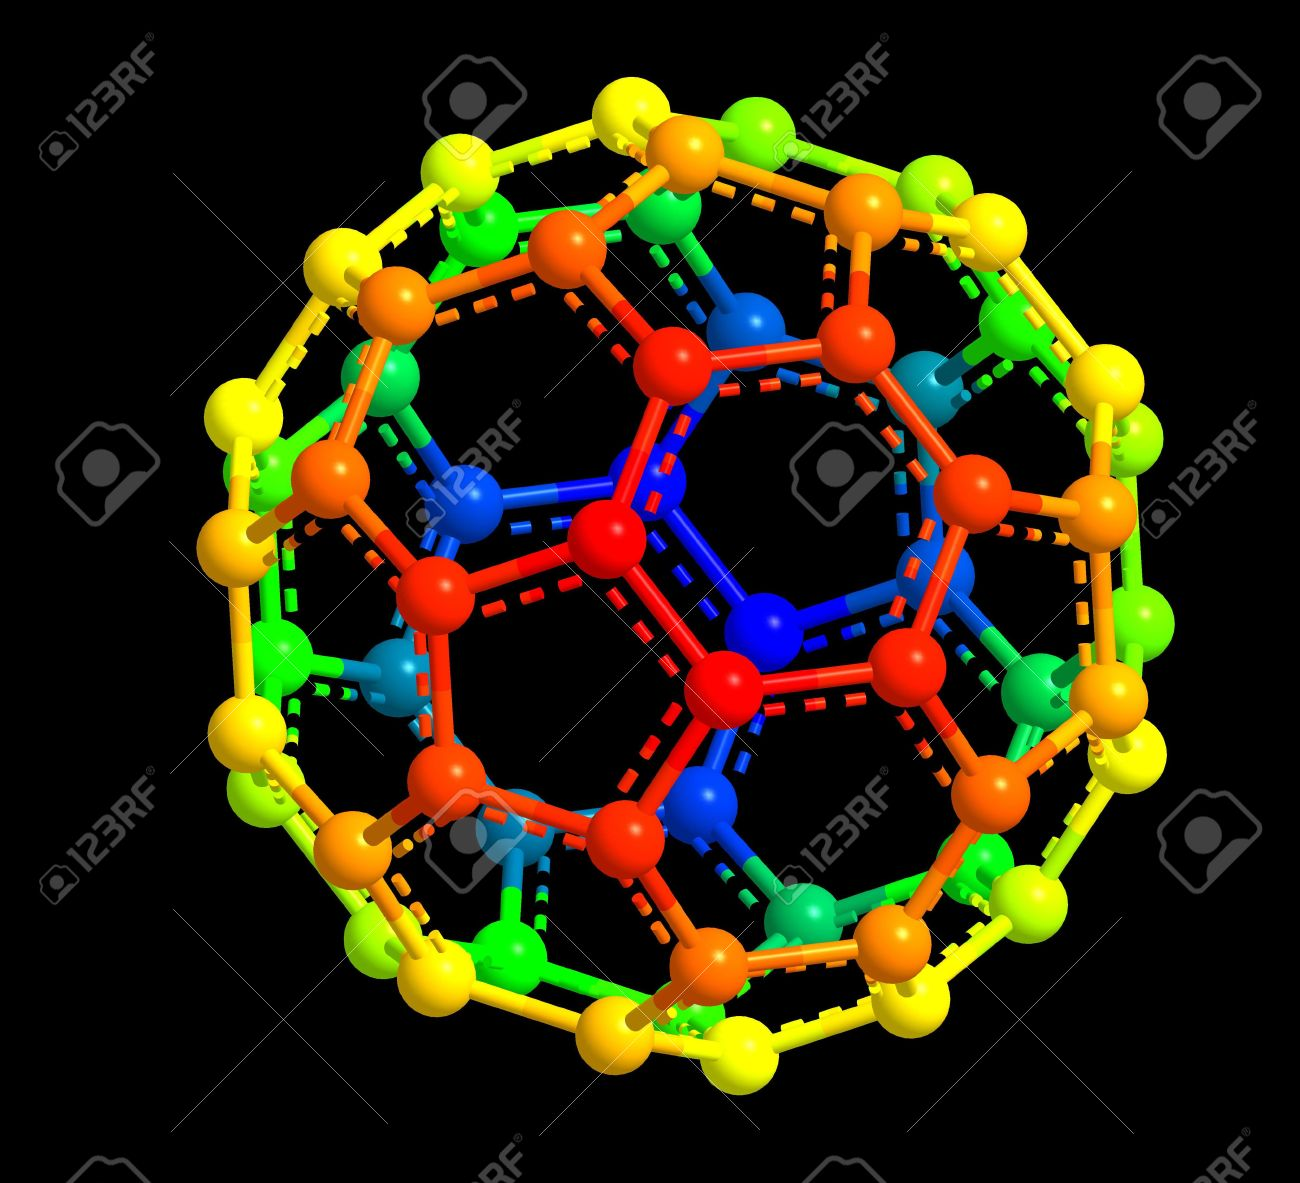 3d model of fullerene molecular structure